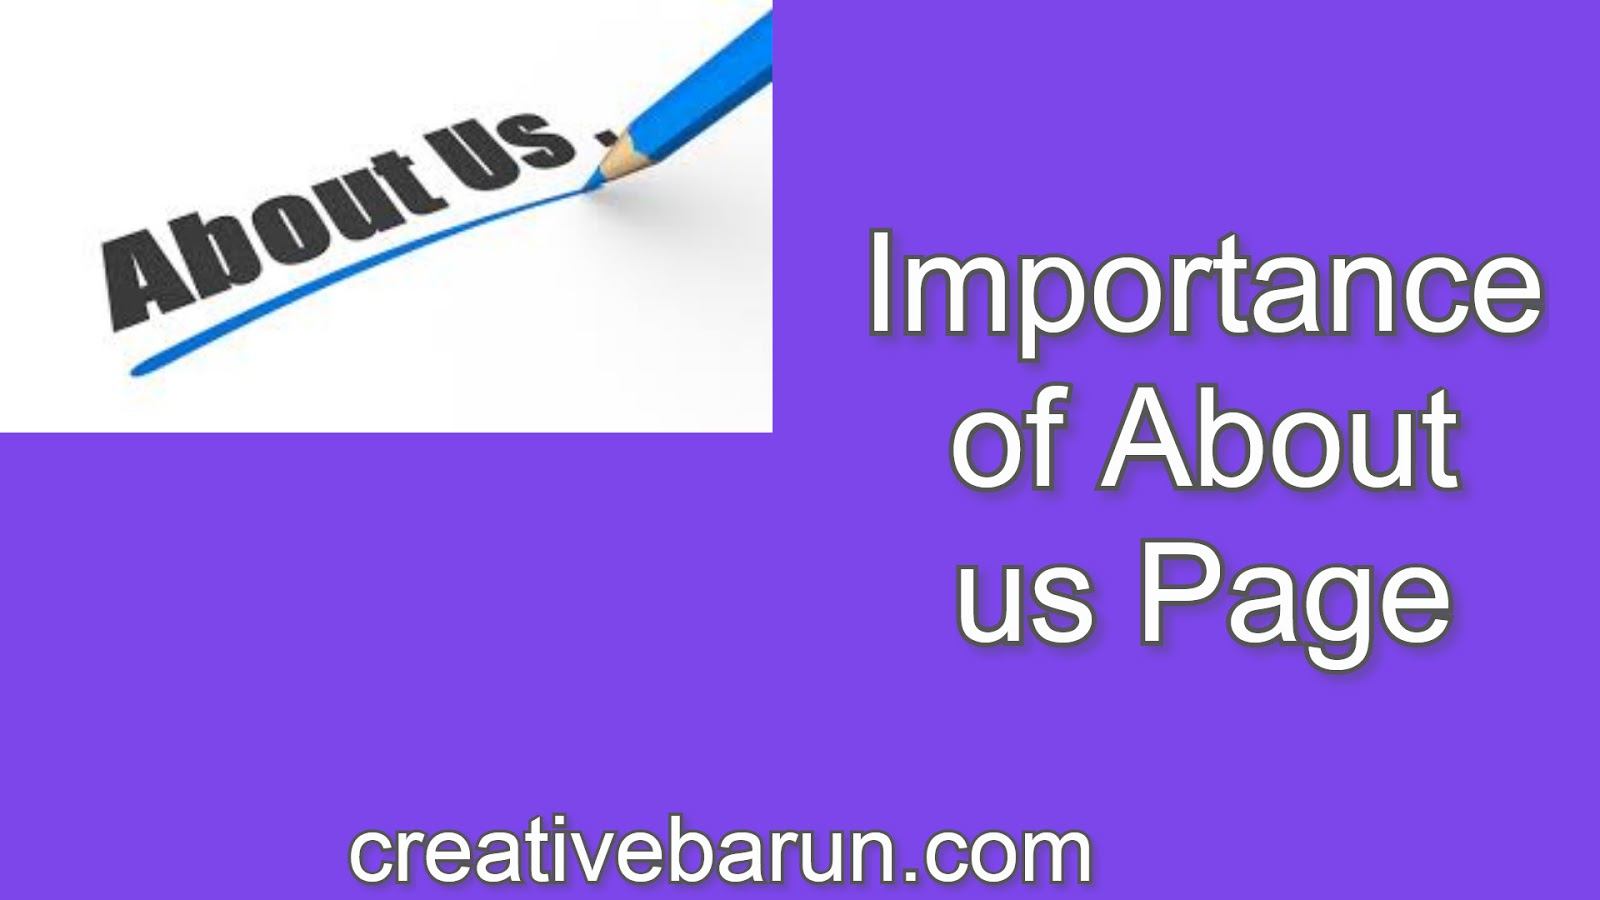 About Us Page | About Me page Importance | How to Add About Us Page